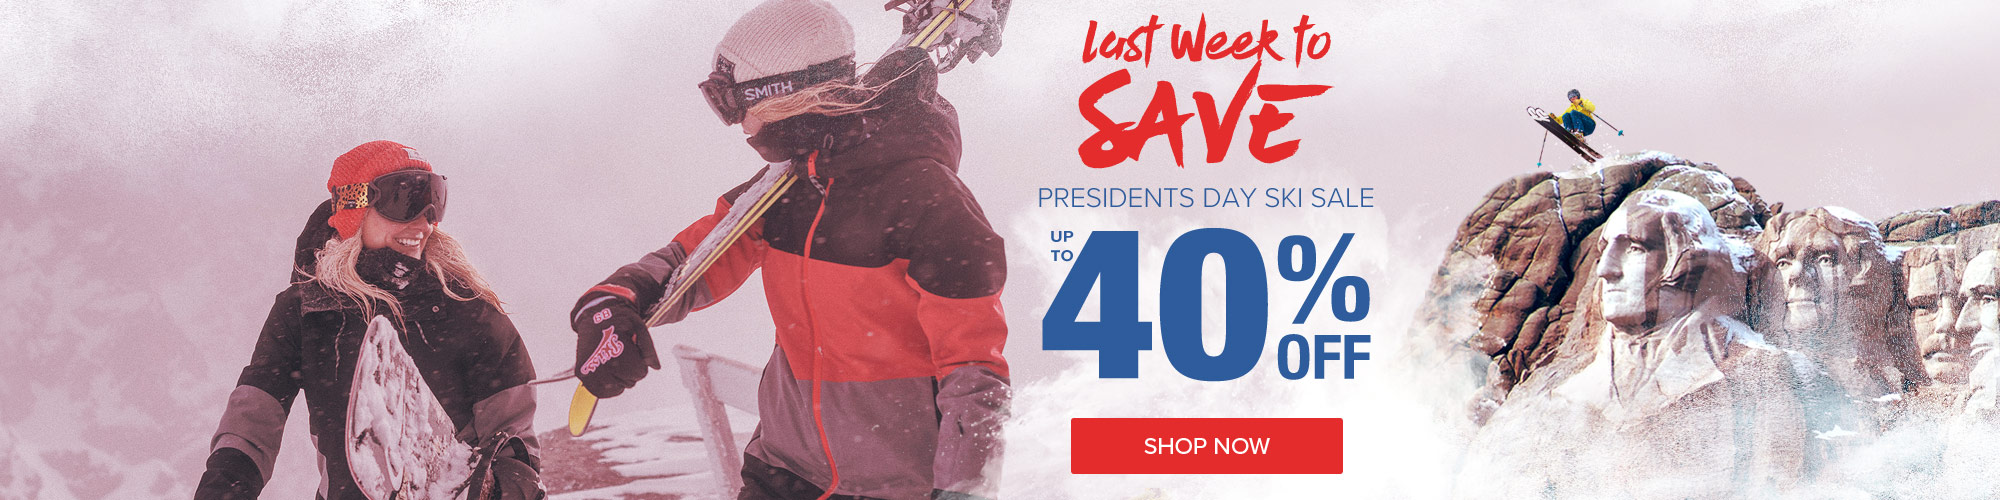 Presidents Day Sale - Shop Now